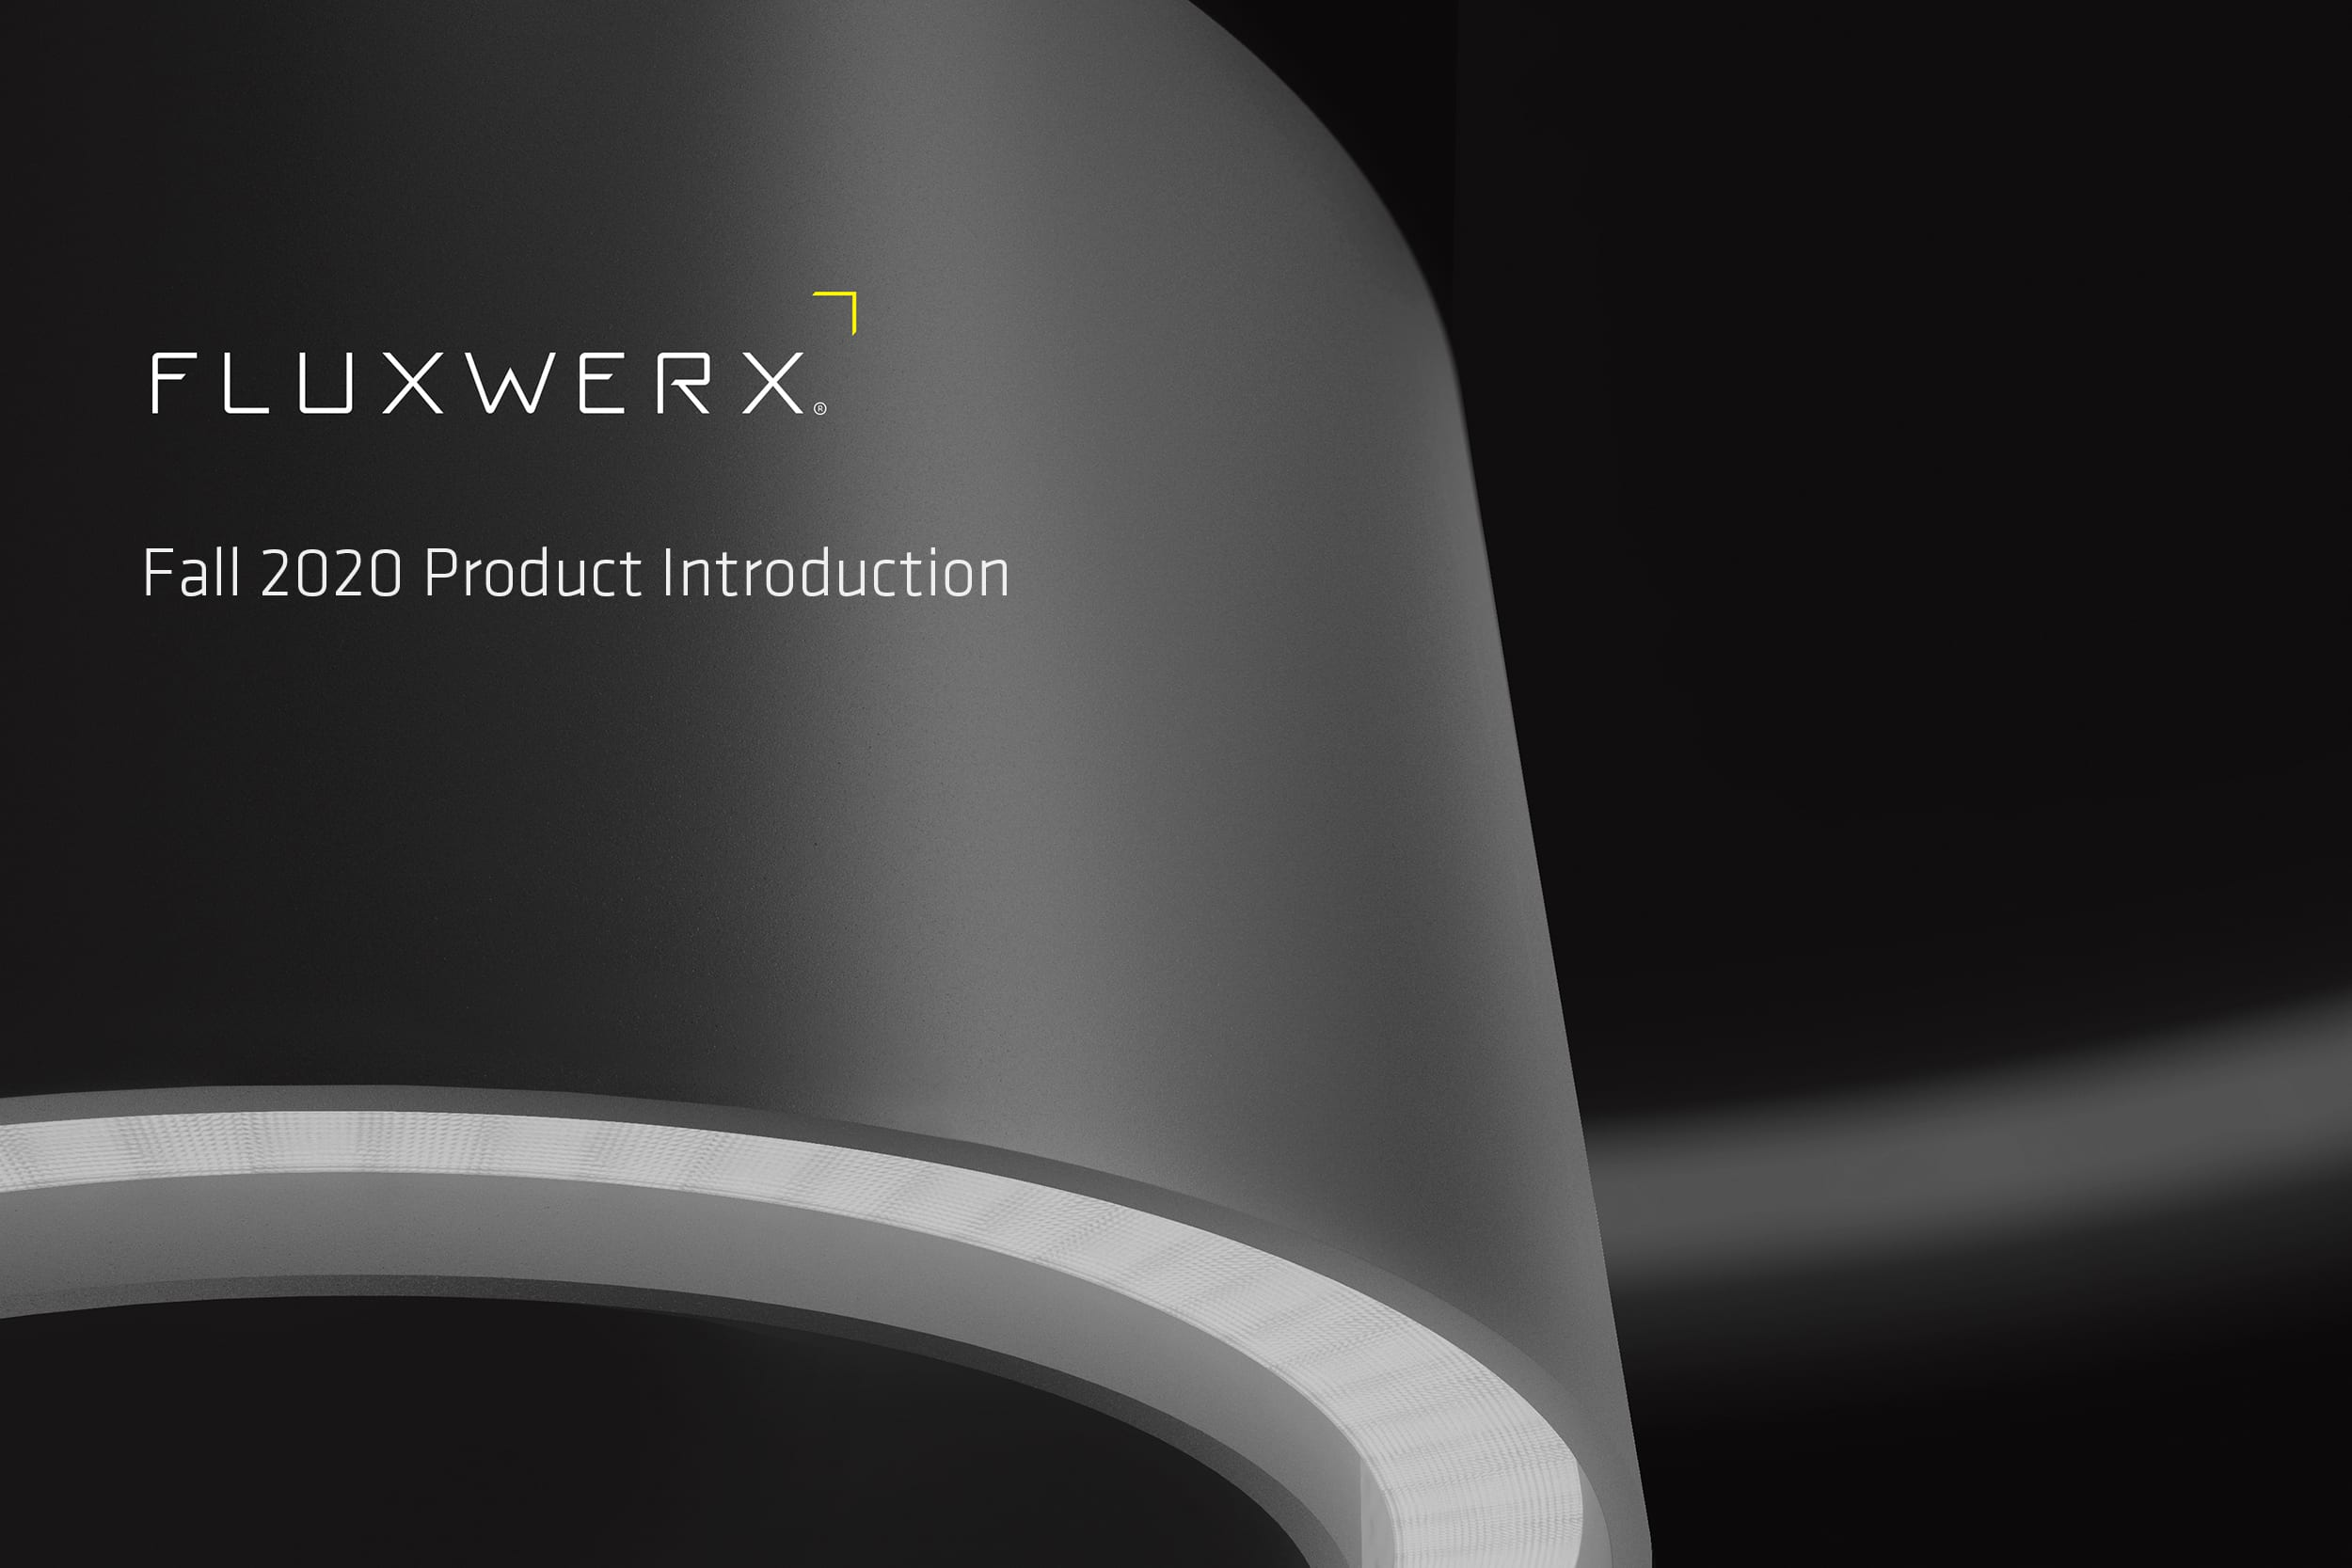 Fluxwerx Fall 2020 Product Introduction